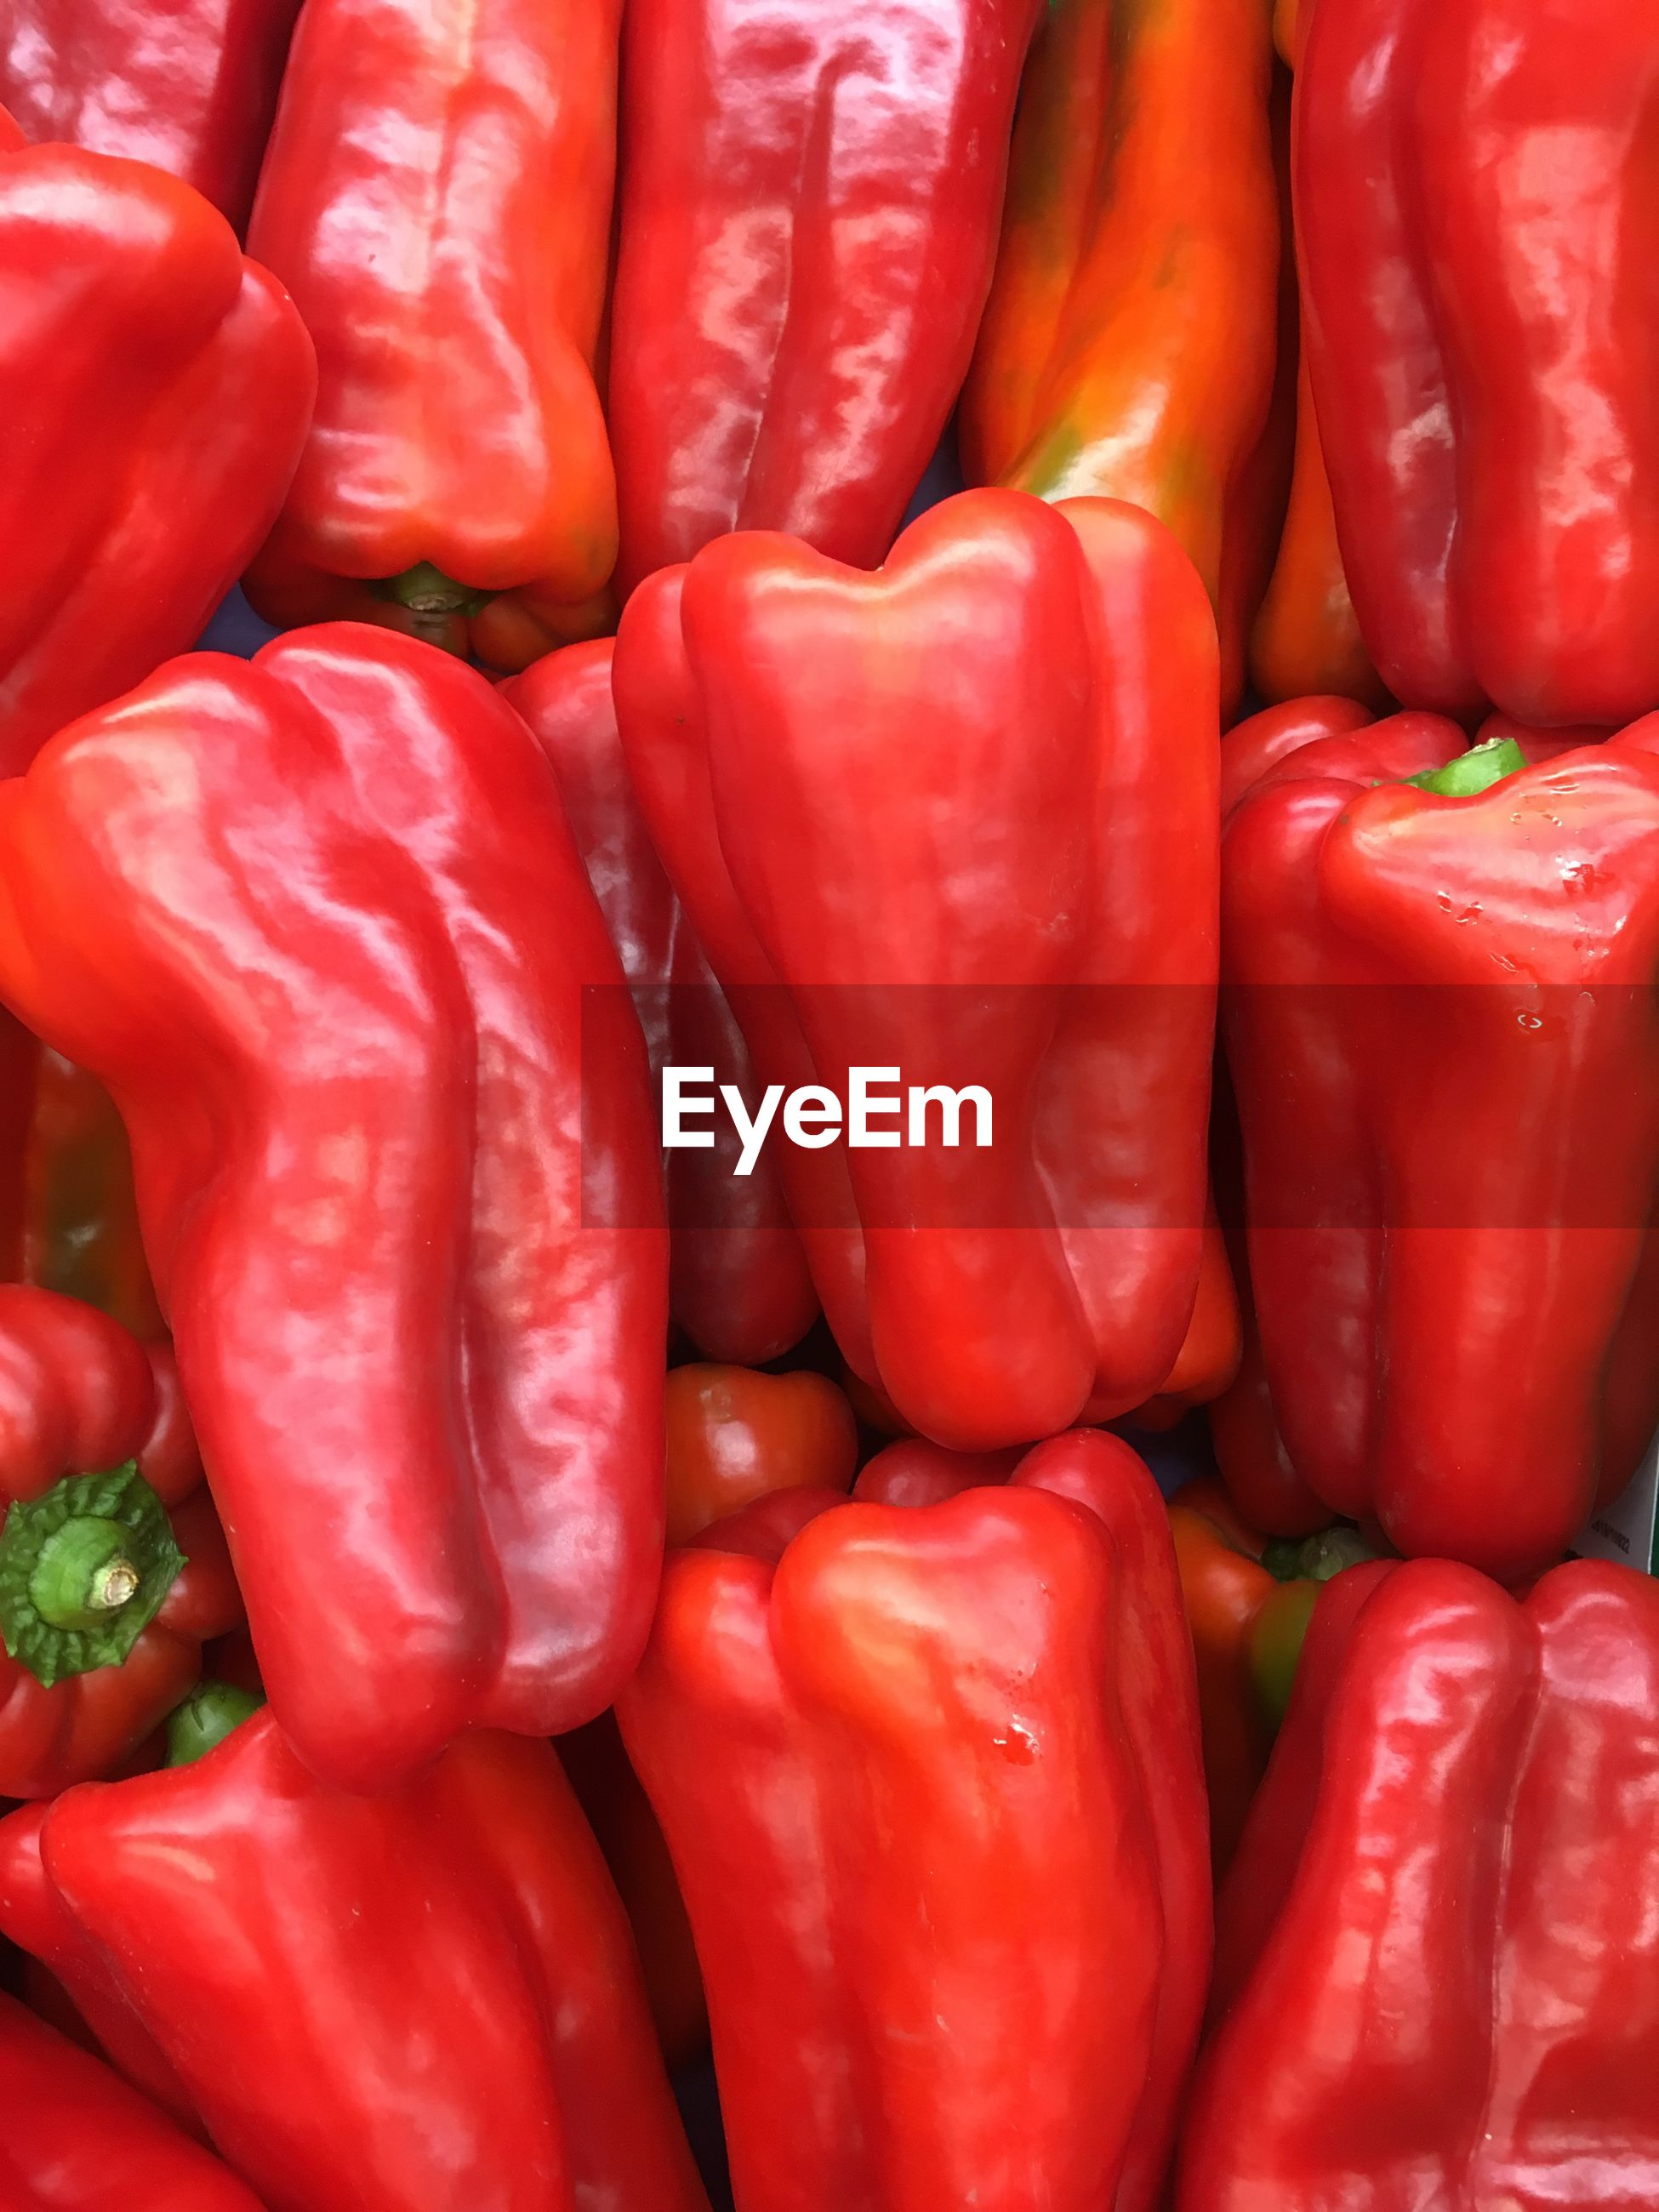 Full frame shot of red bell peppers for sale at market stall